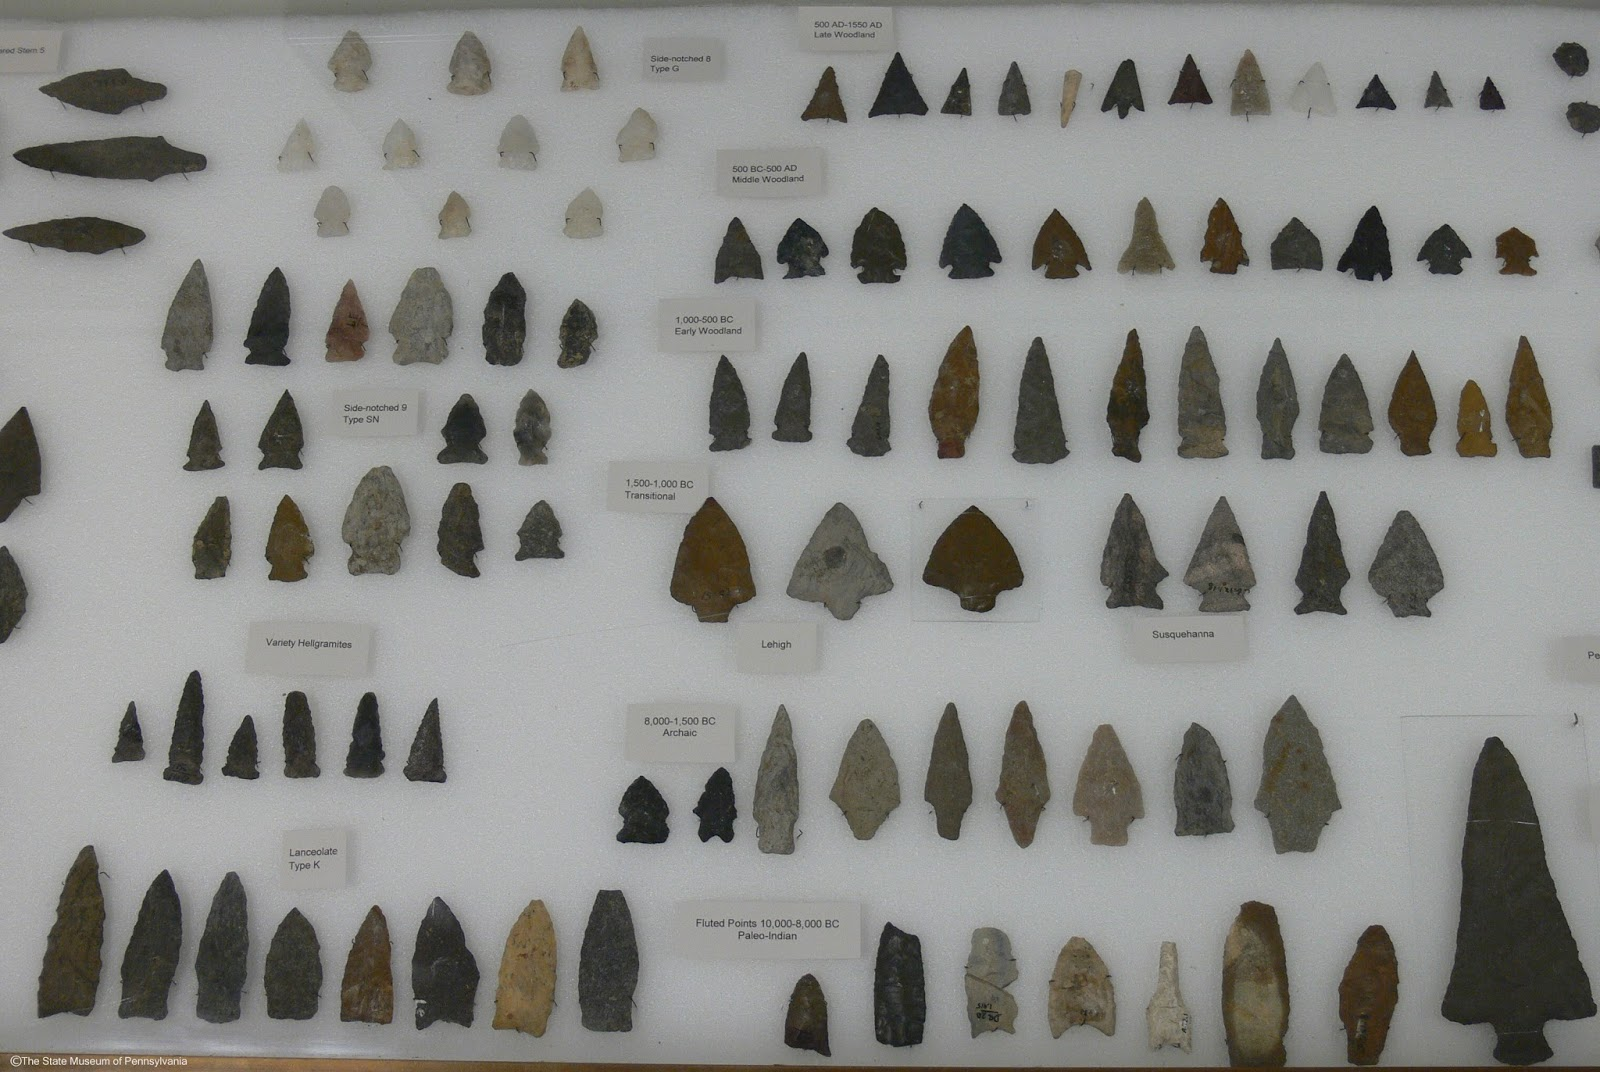 Dating methods used in archaeology